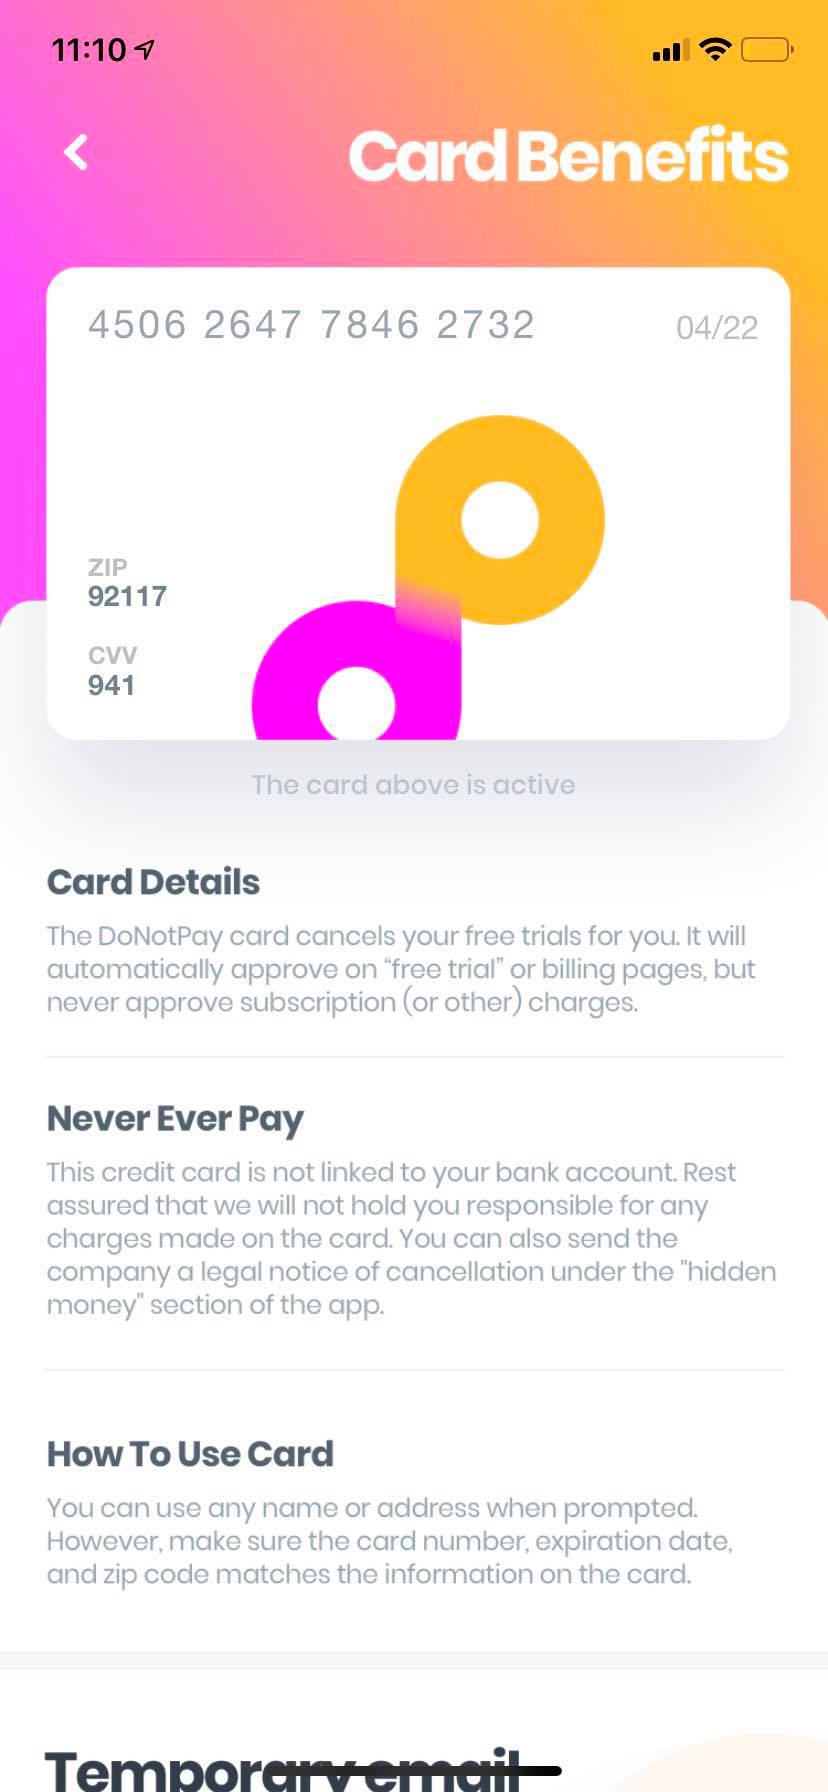 card numbers to use for free trials